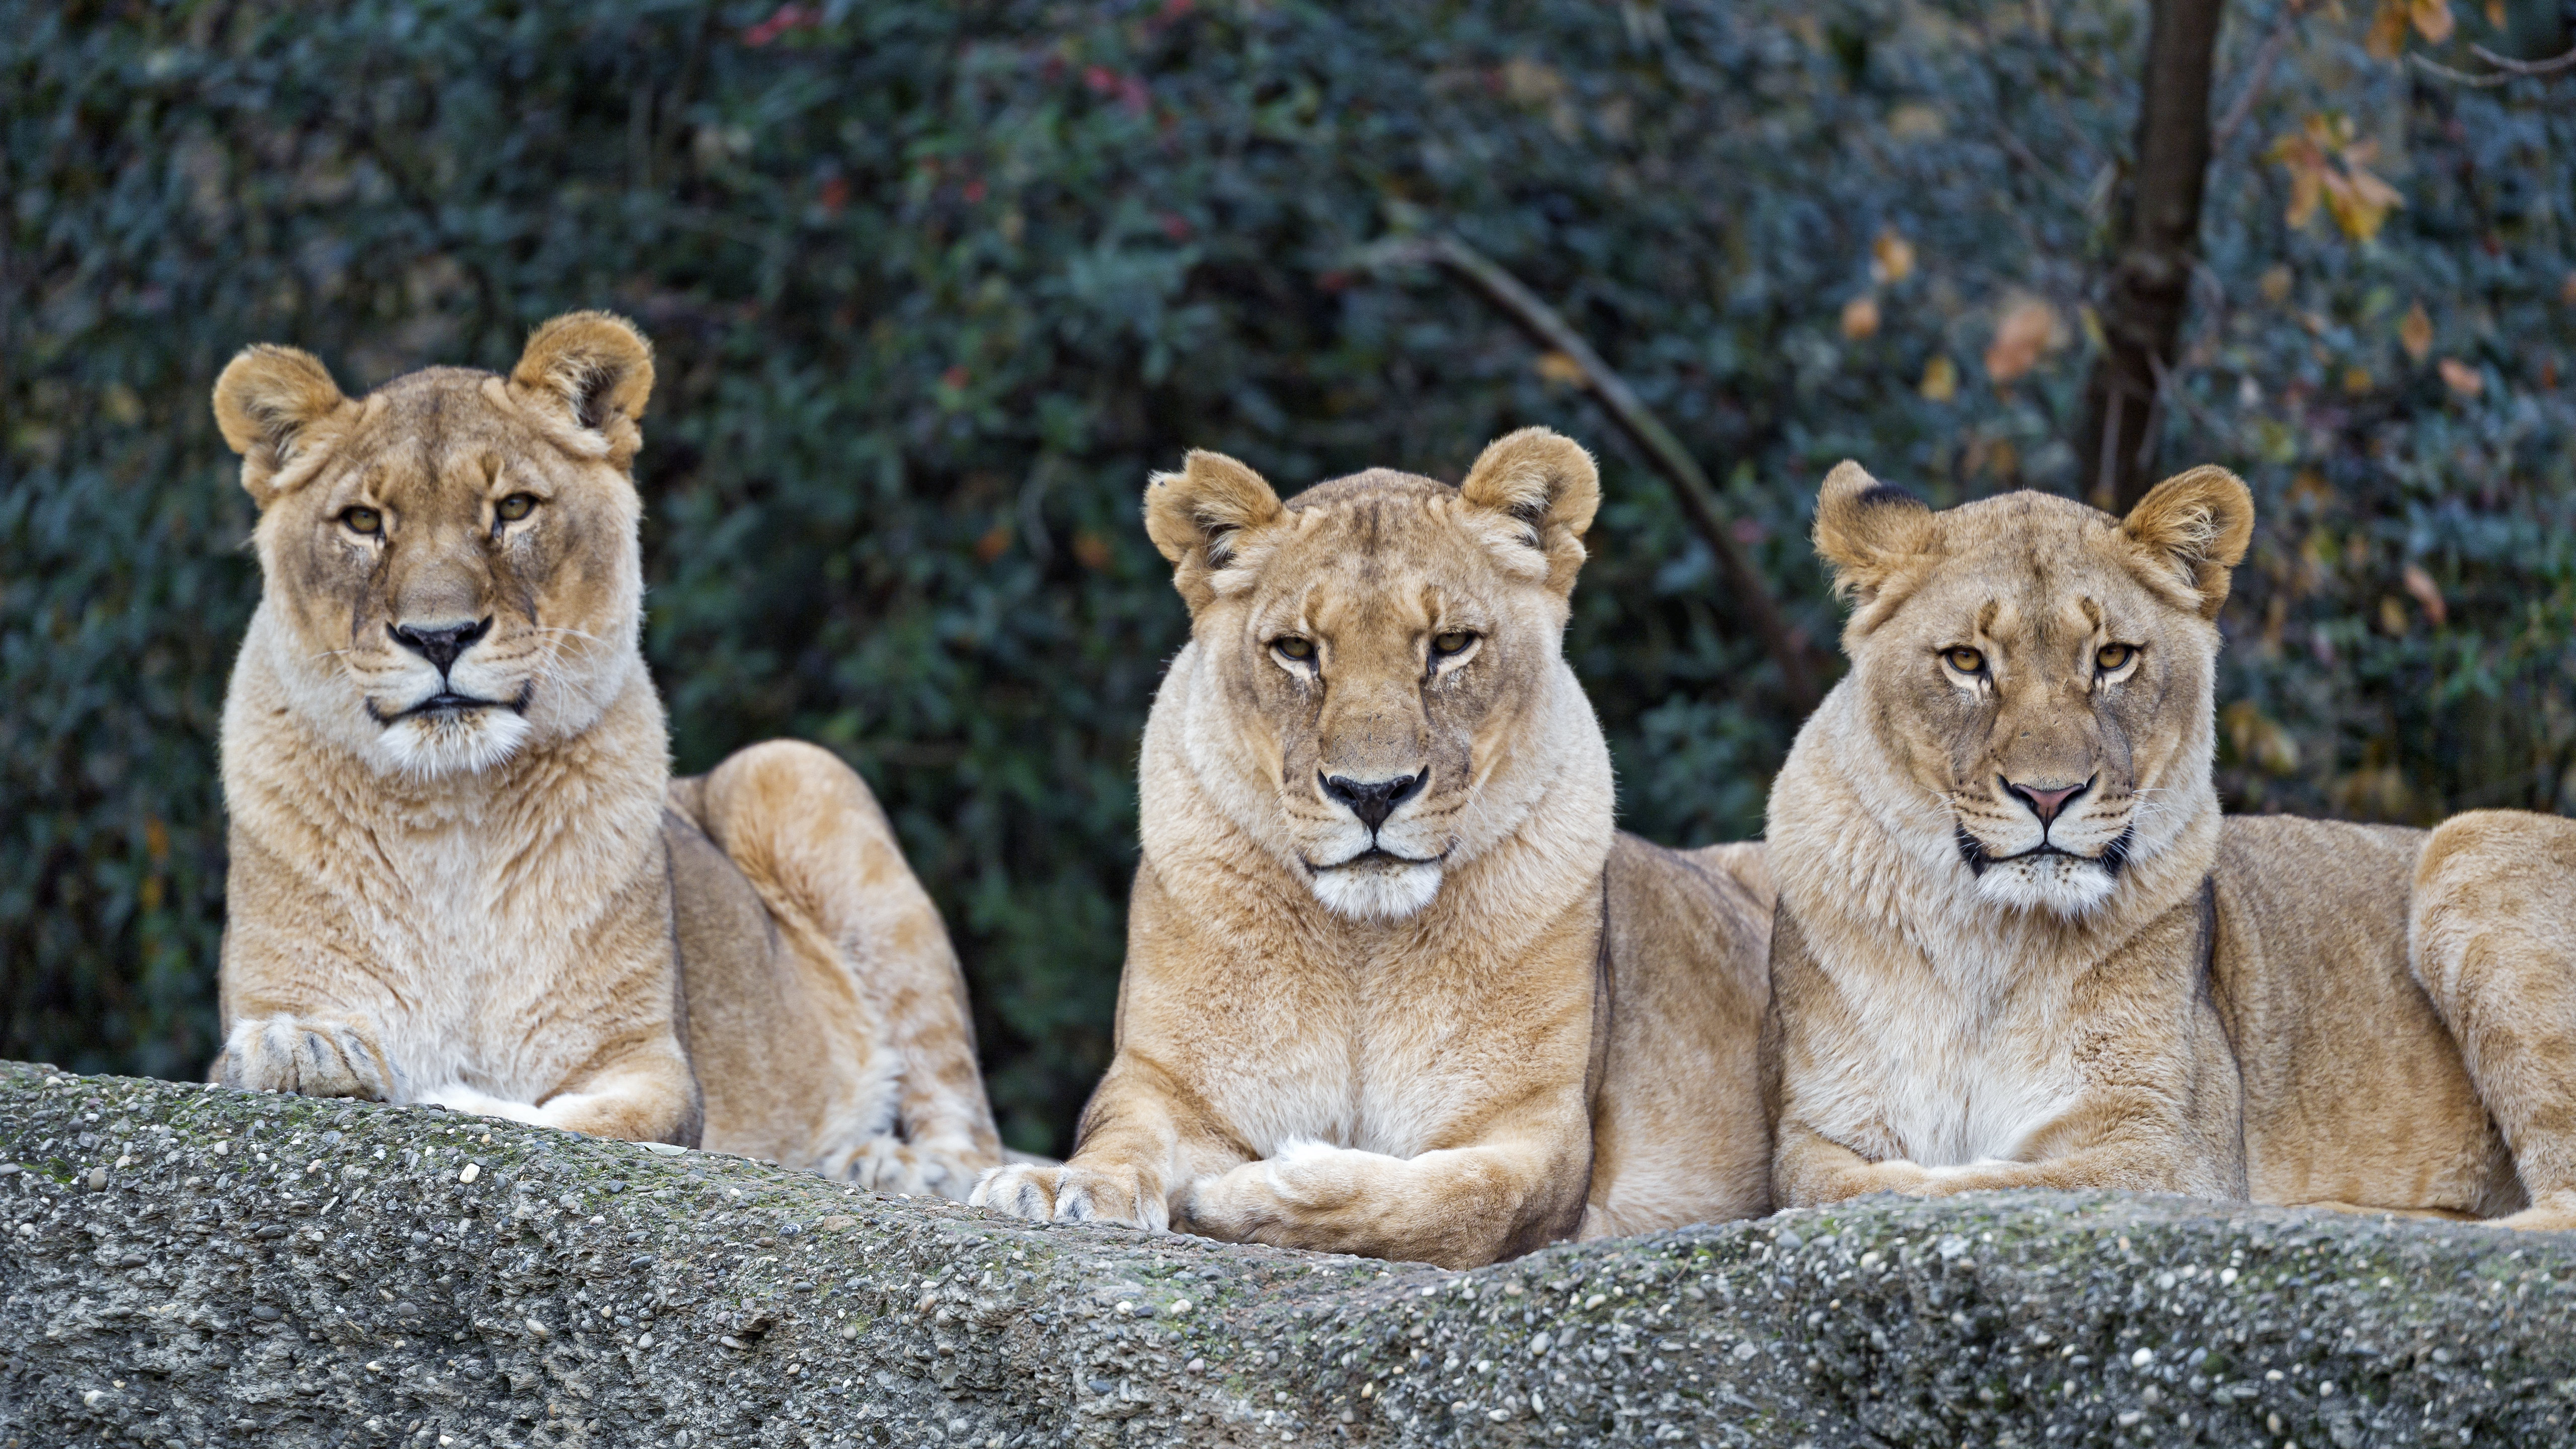 109508 download wallpaper Animals, Lioness, Big Cat, Predator, Sight, Opinion screensavers and pictures for free